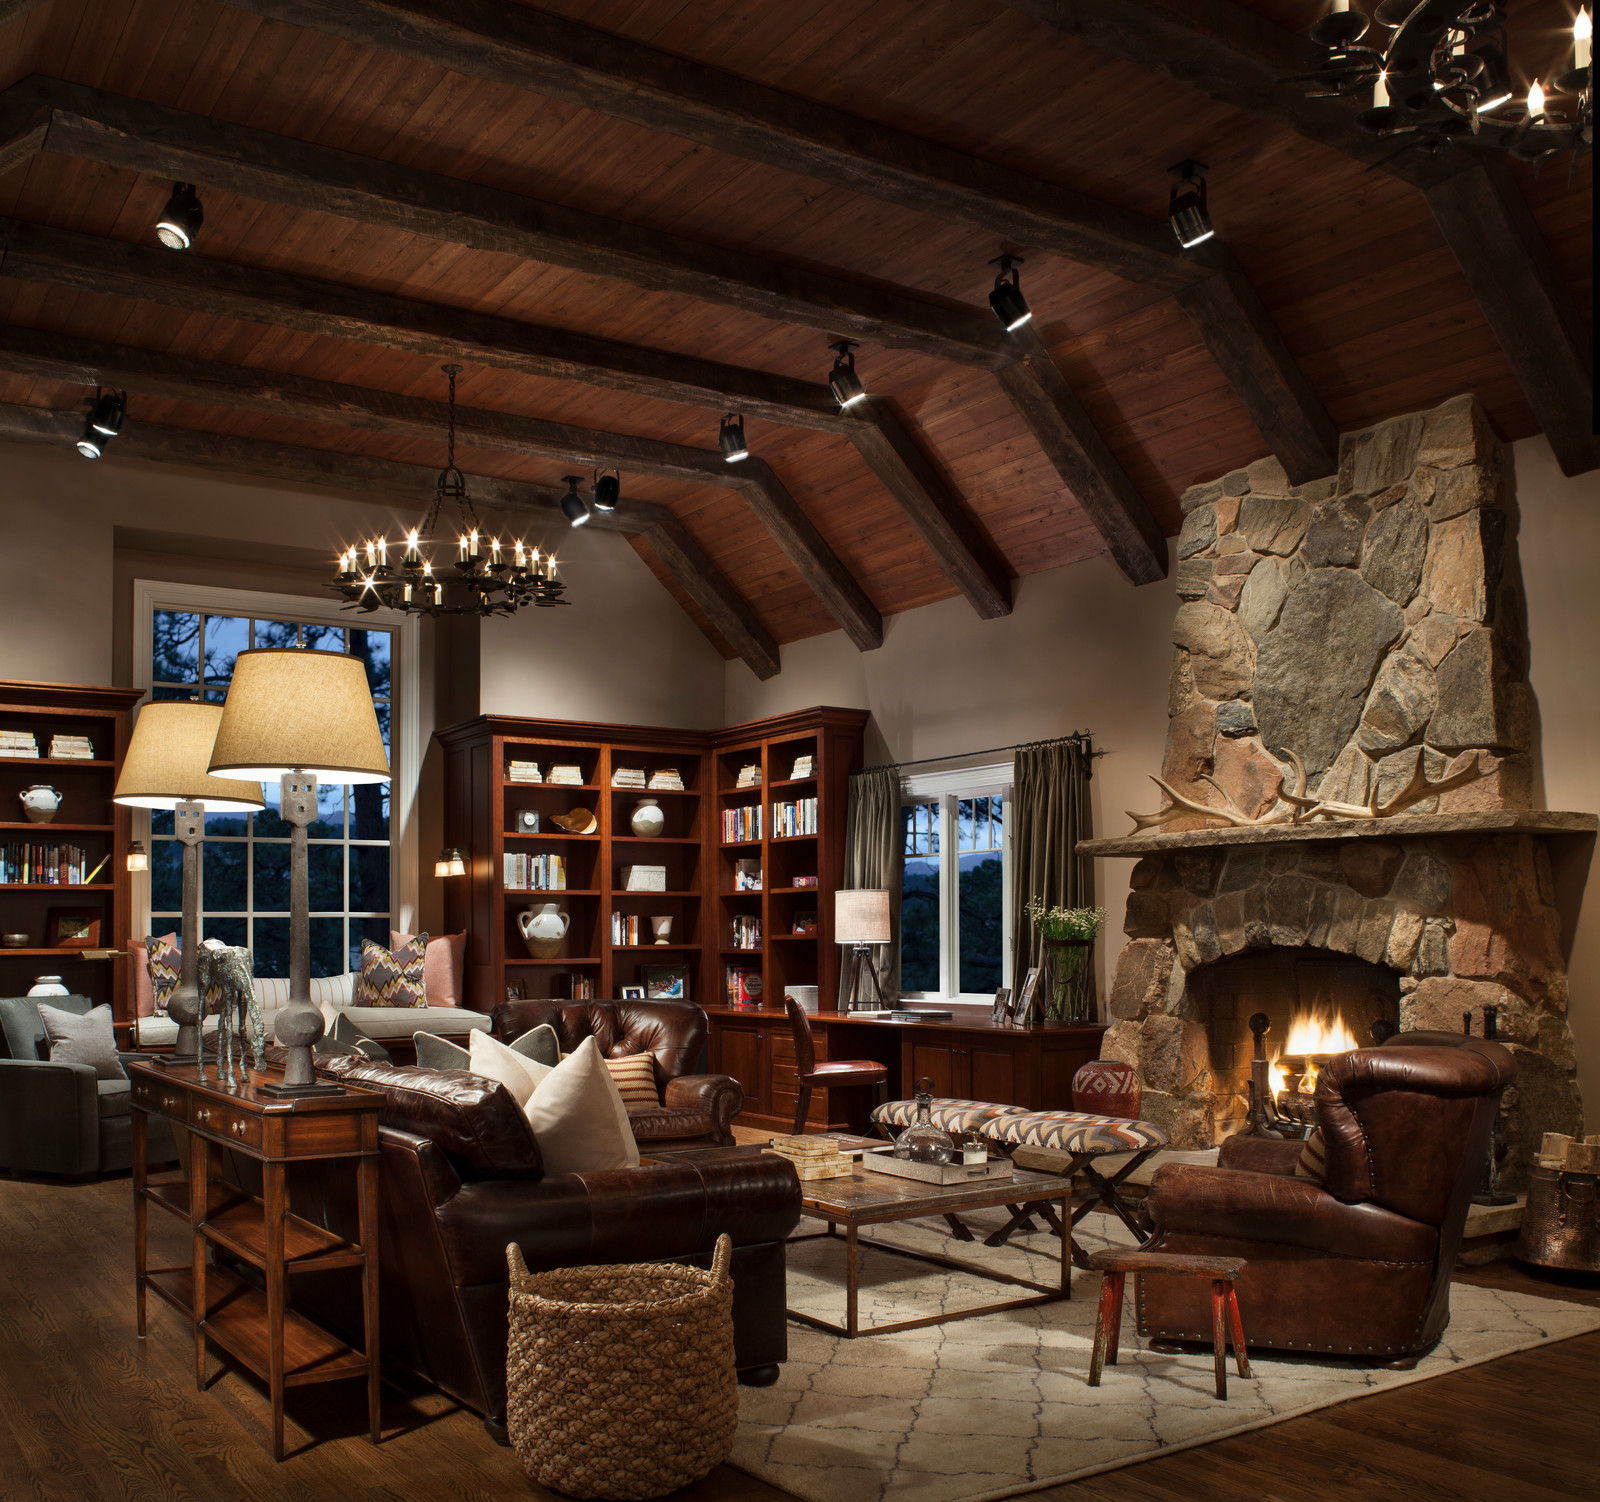 16 Sophisticated Rustic Living Room Designs You Won't Turn ... on Living Room Design Ideas  id=97880